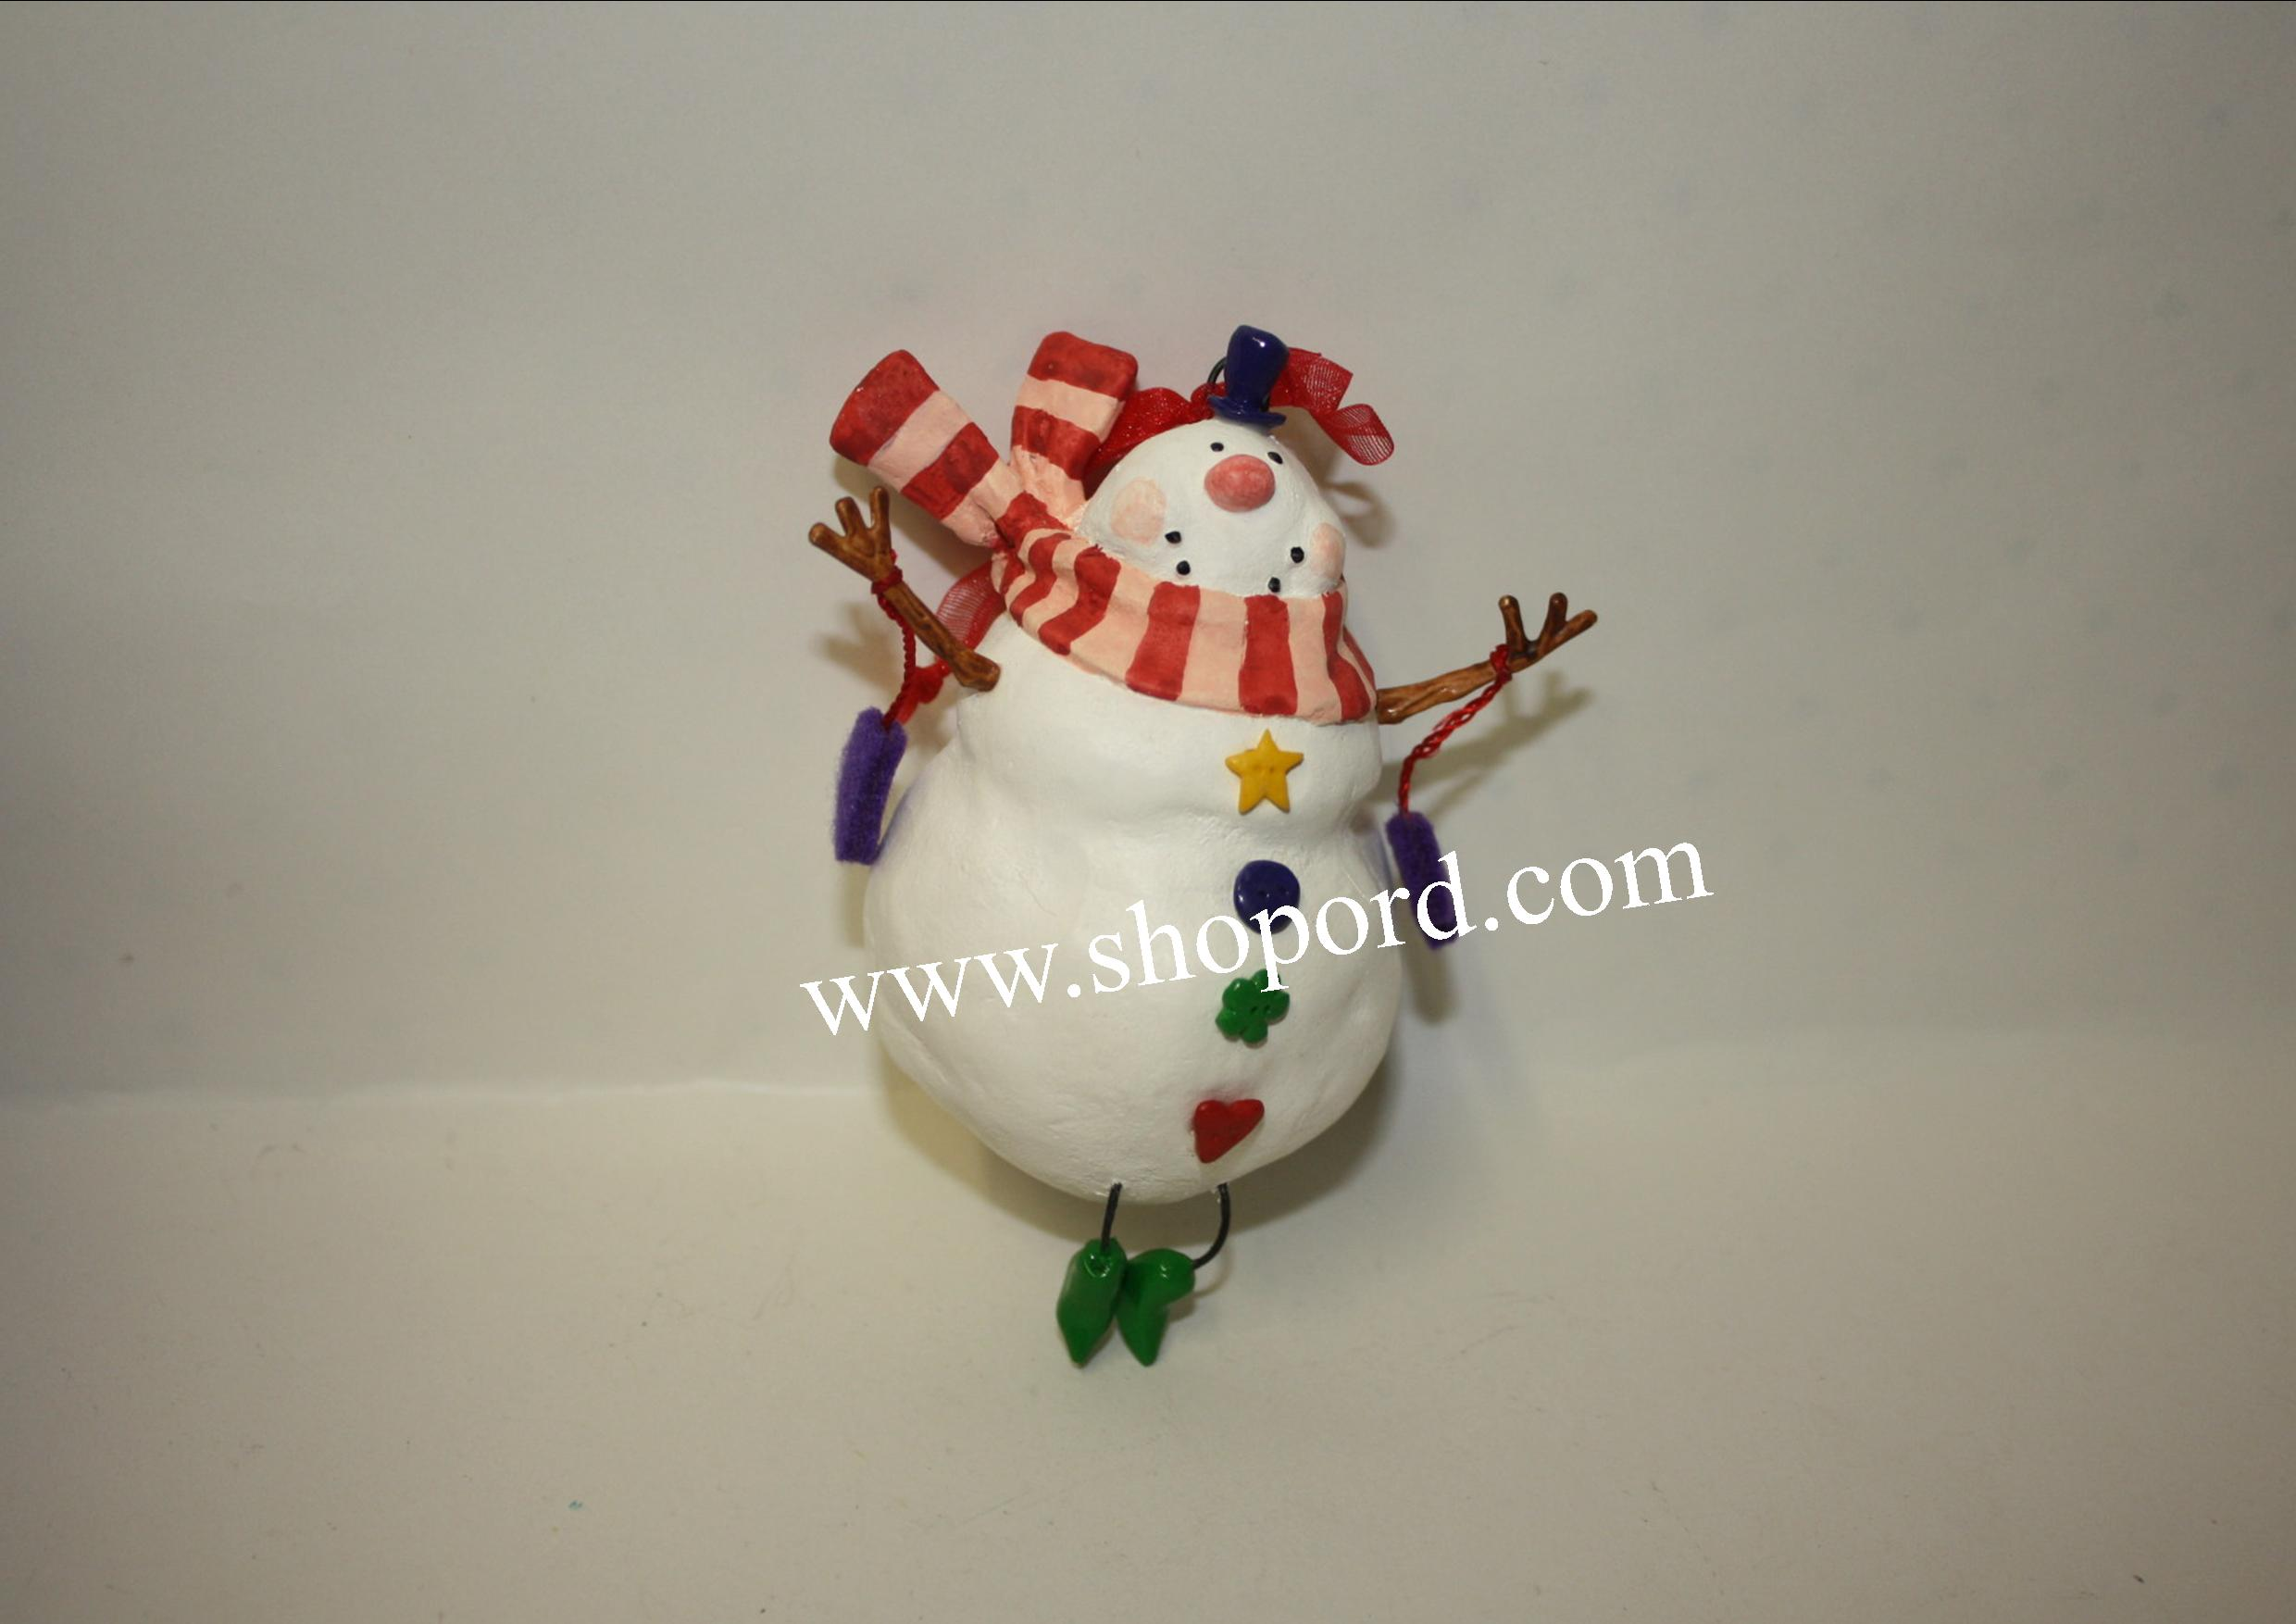 Hallmark 2001 Happy Snowman Ornament QX8942 Damaged Box